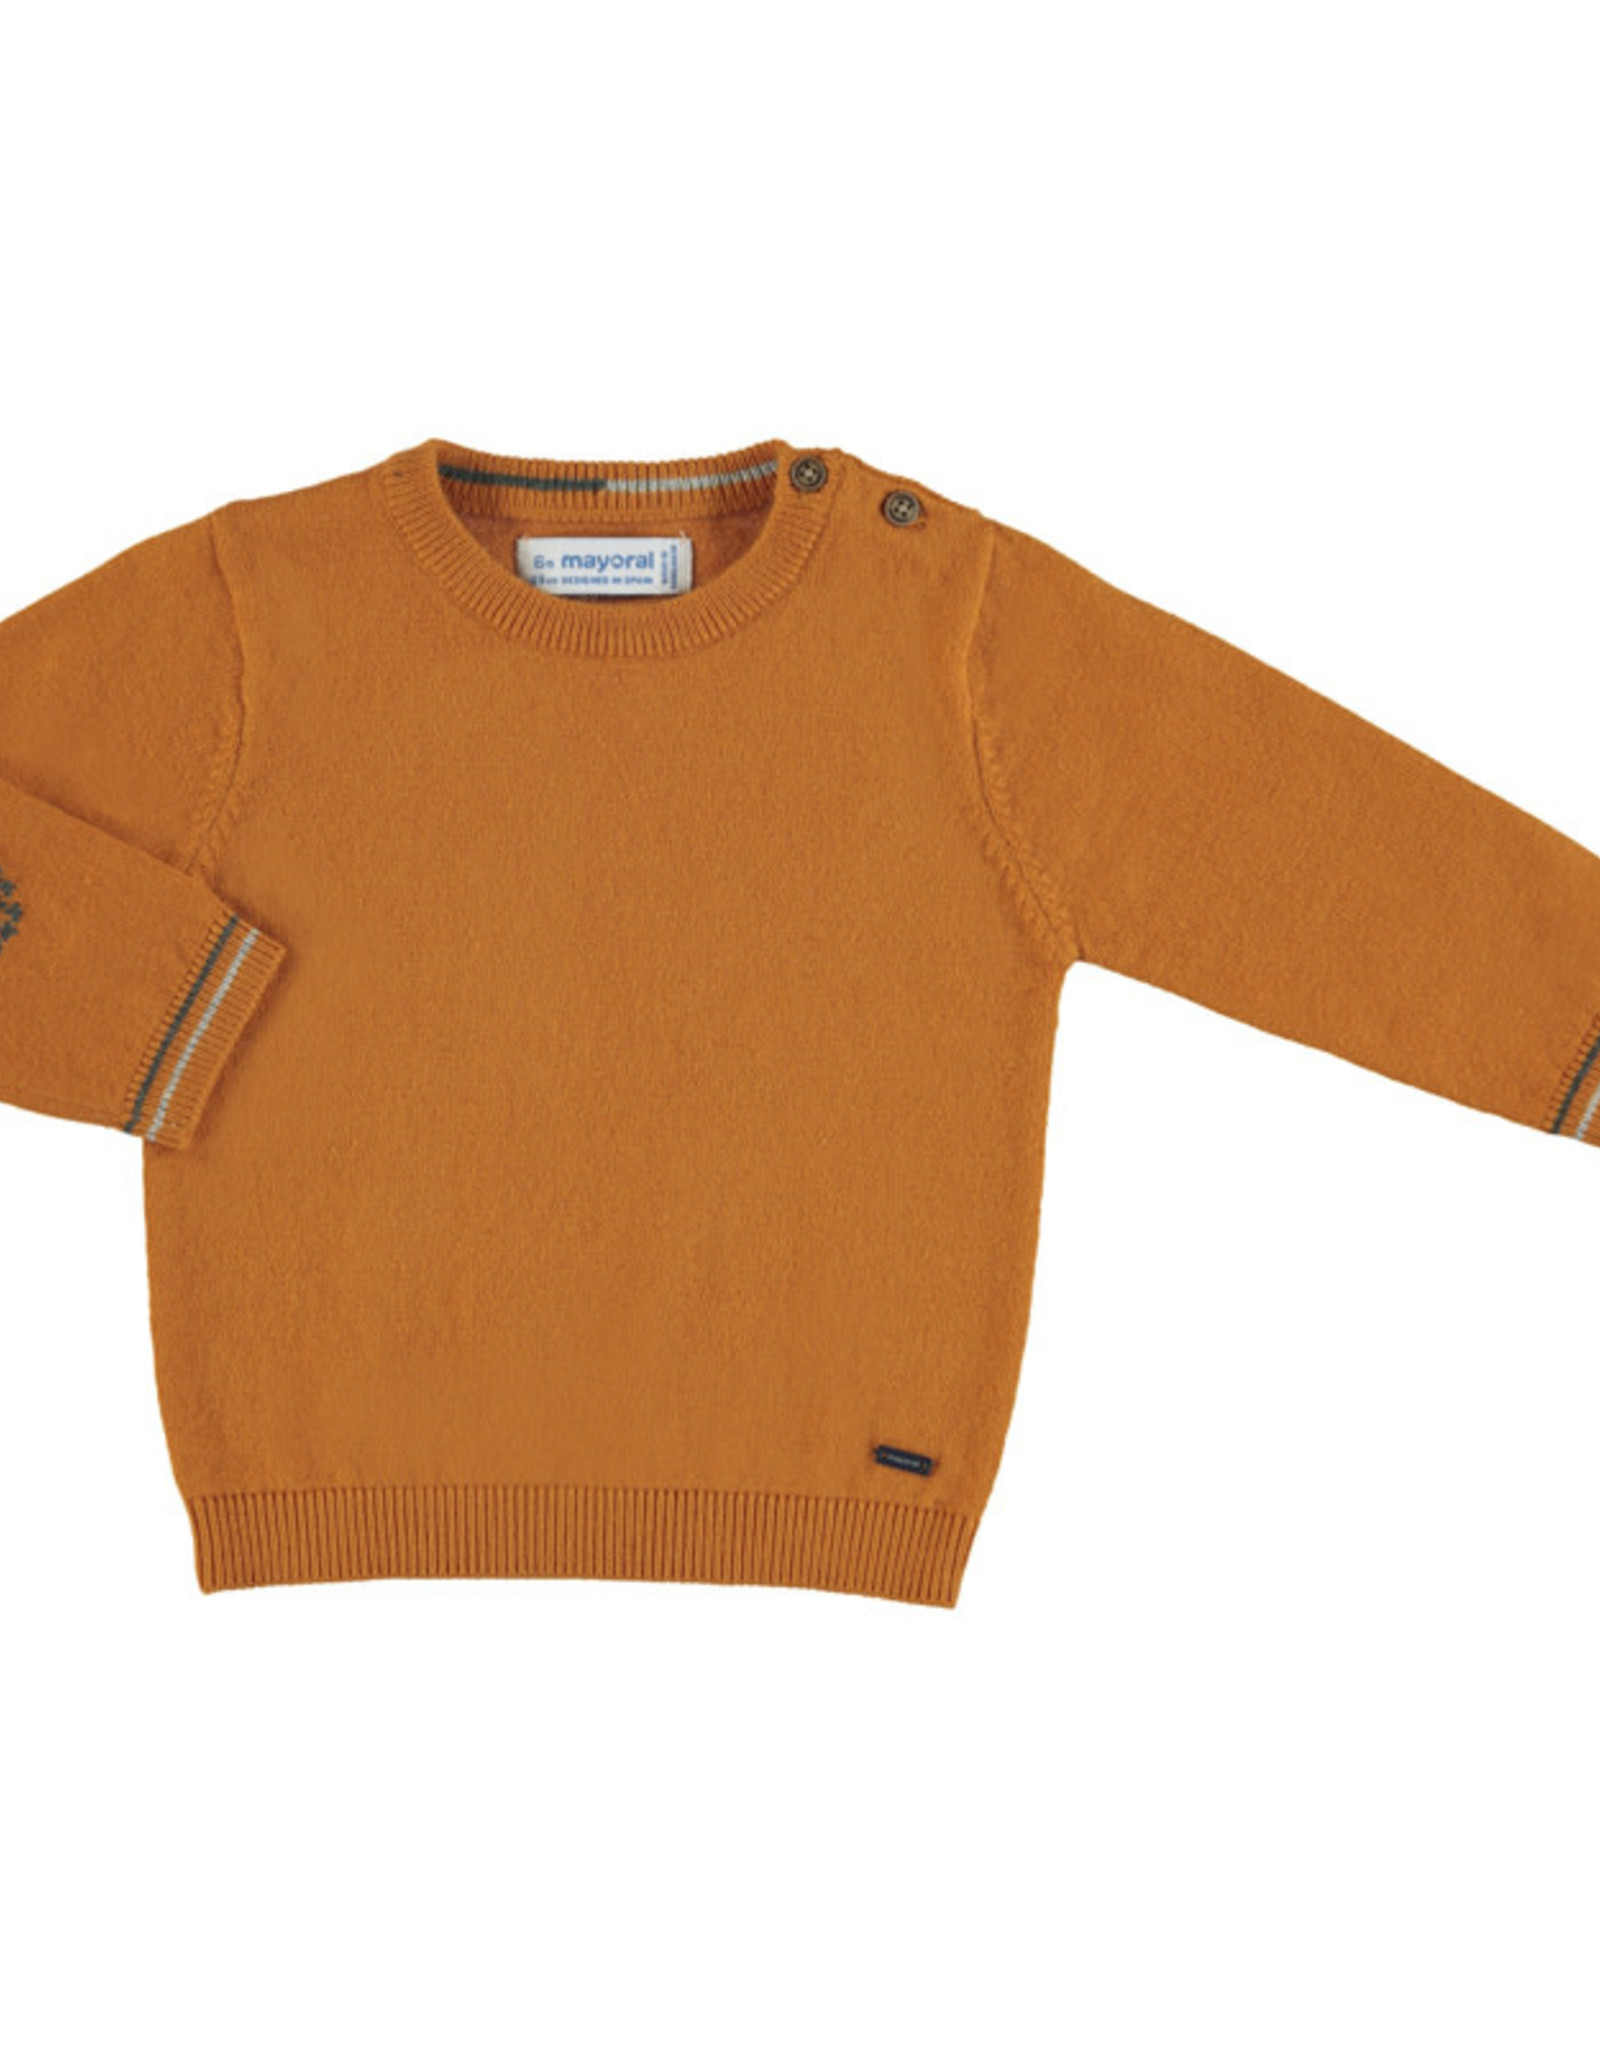 Mayoral Infant Cheddar Cotton Crew Sweater